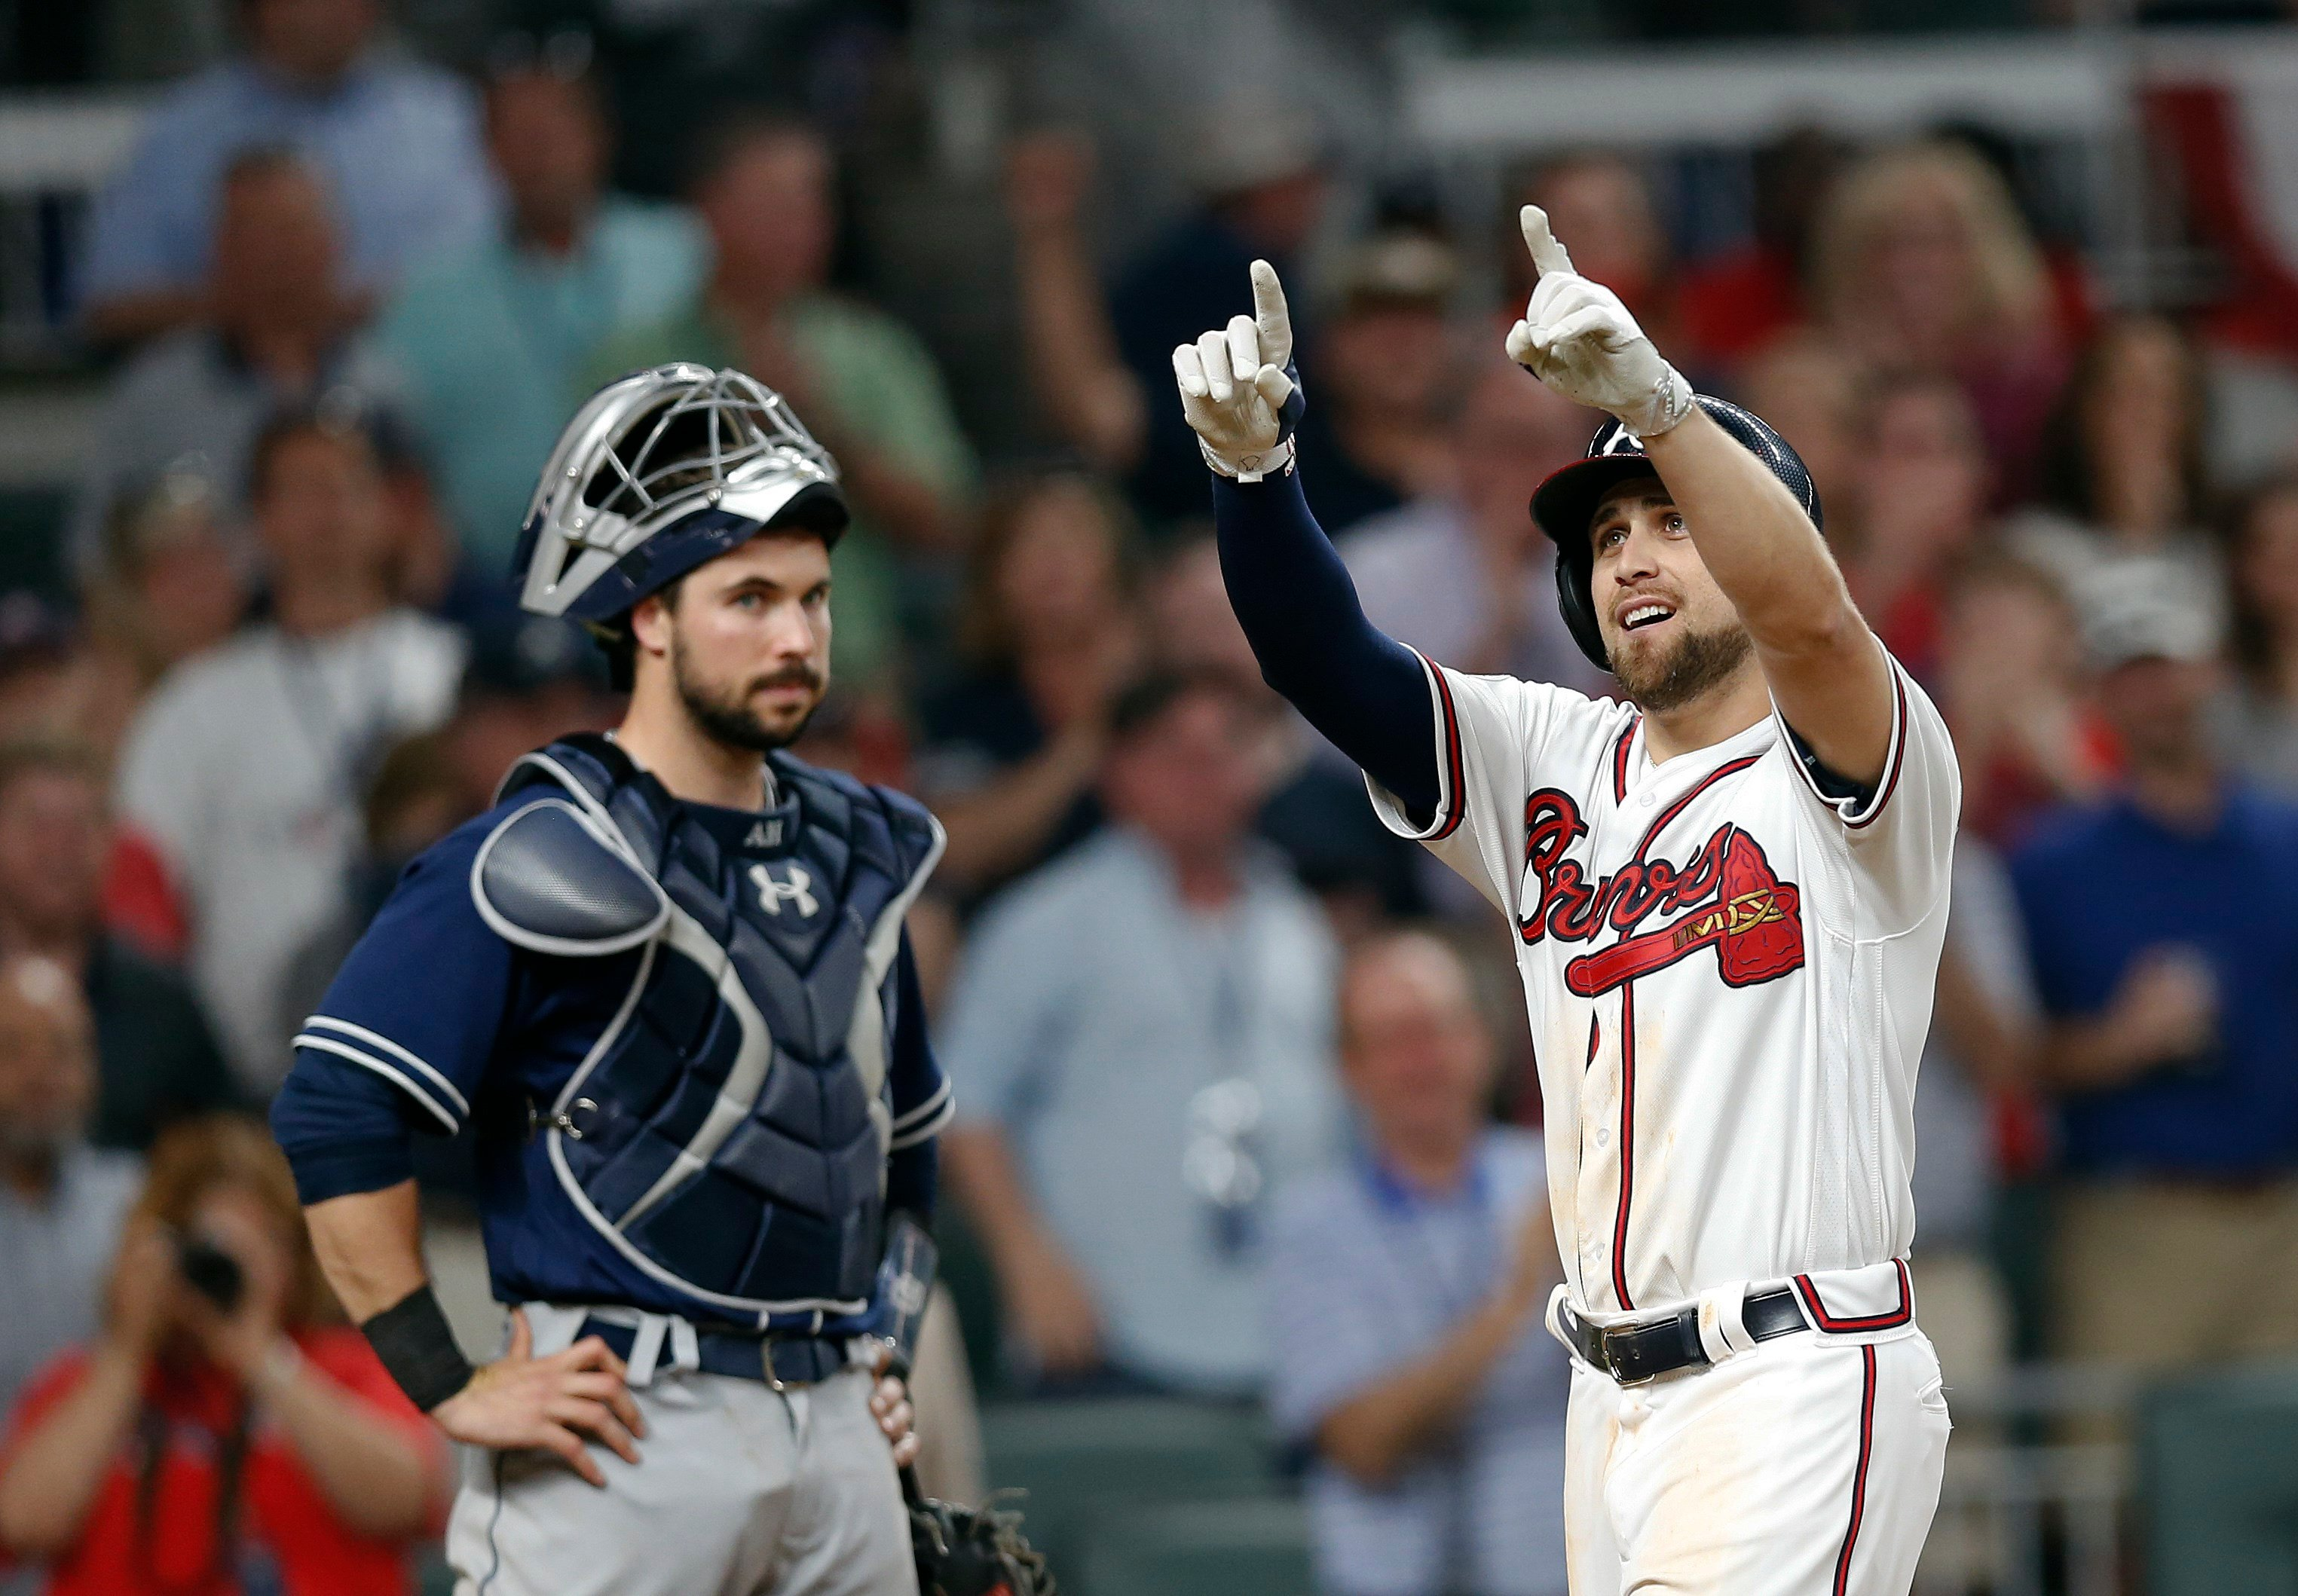 Atlanta Braves' Ender Inciarte, right, gestures as he crosses home plate in front of San Diego Padres catcher Austin Hedges, left, after hitting a two-run home run in the sixth inning of a baseball game Friday, April 14, 2017, in Atlanta. The home run was